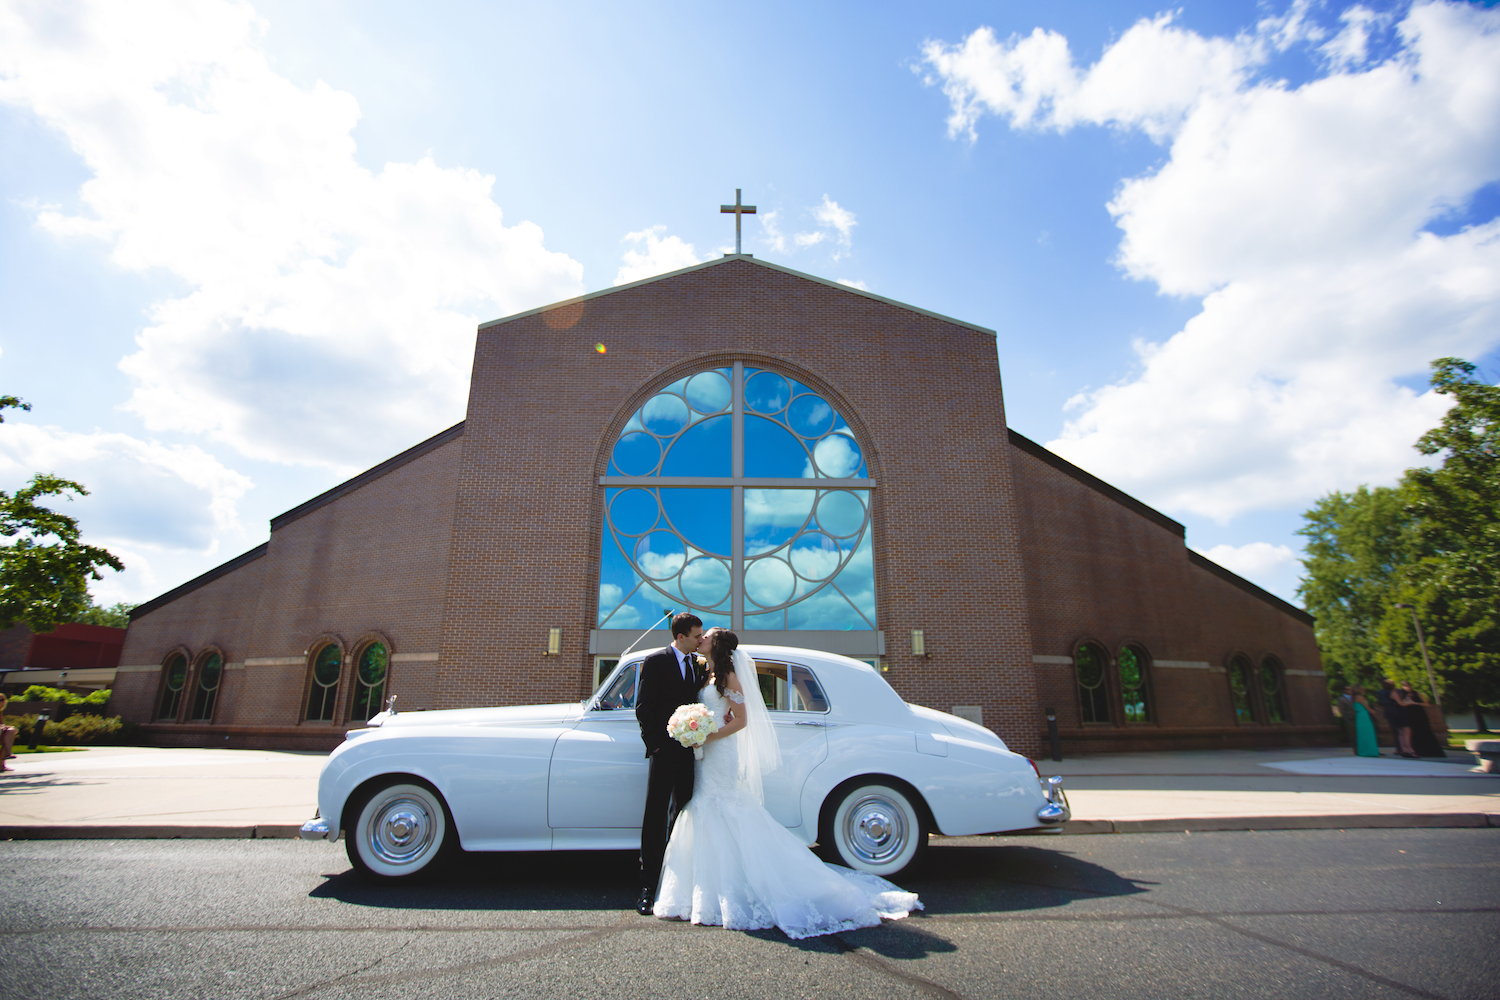 scott&jessica-kissing-by-car-church-nj-wedding-photography